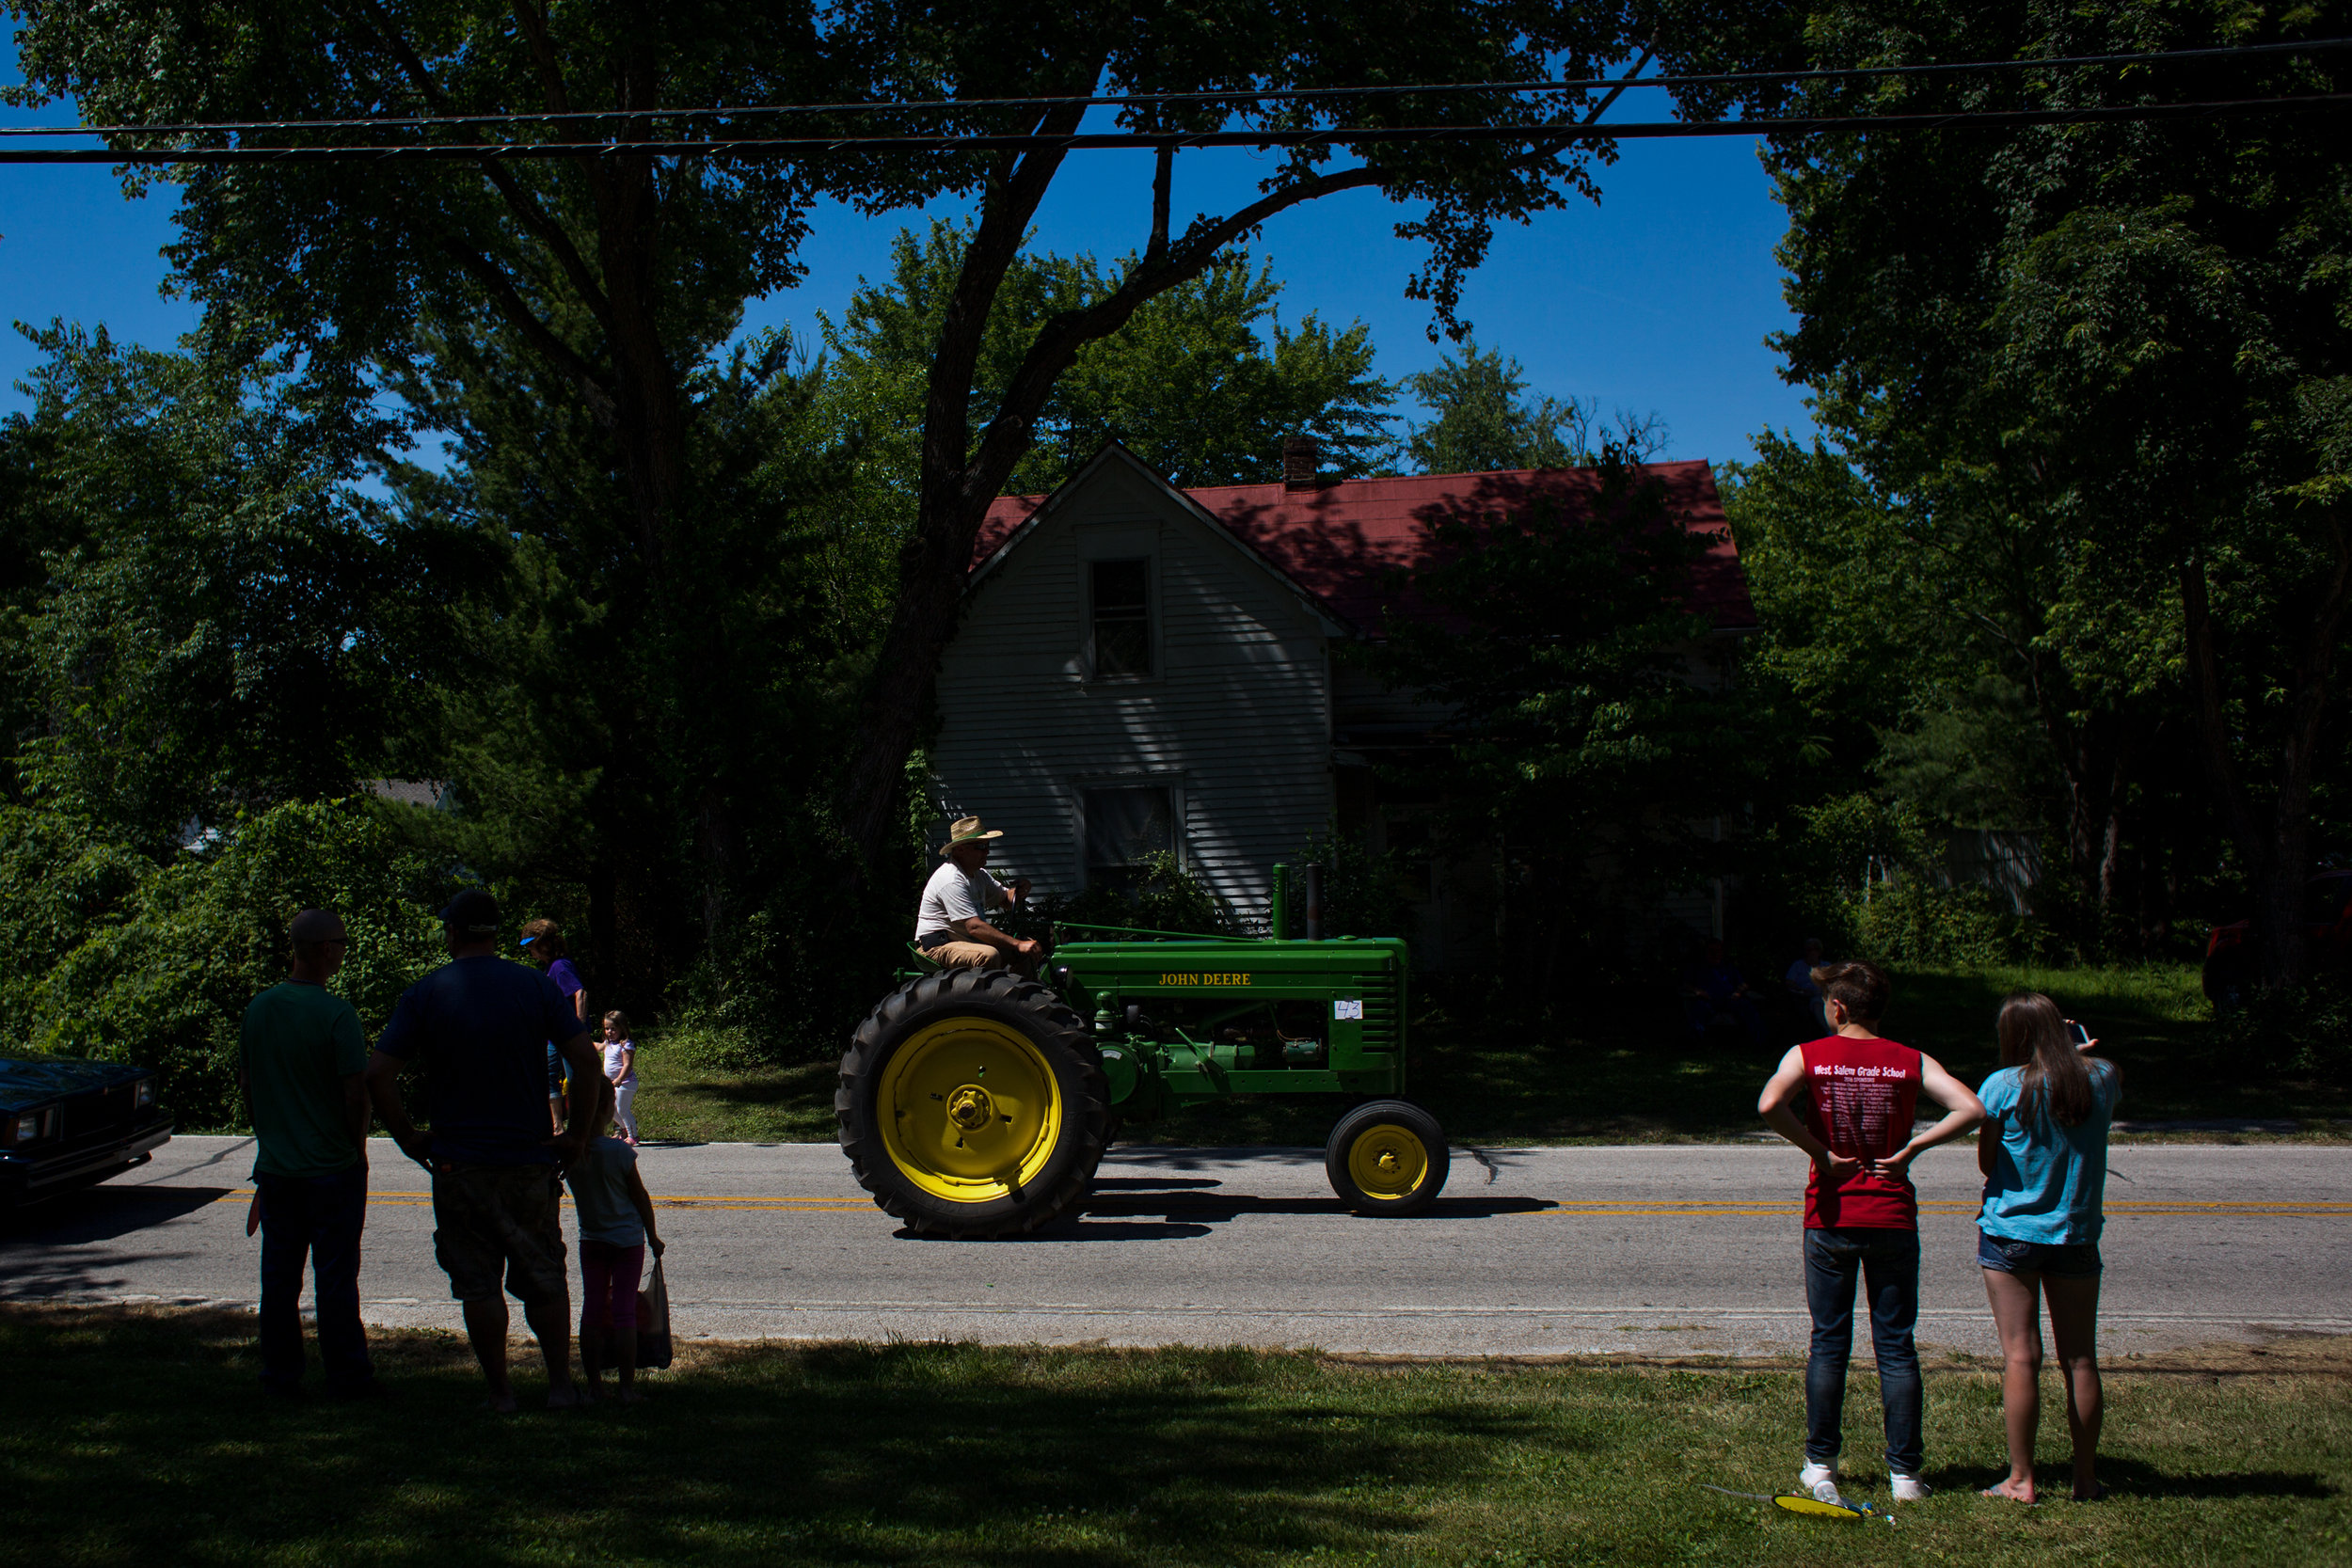 Mike Whaley of Otwell drove his tractor in the parade during the town of Stendal's sesquicentennial celebration Saturday.